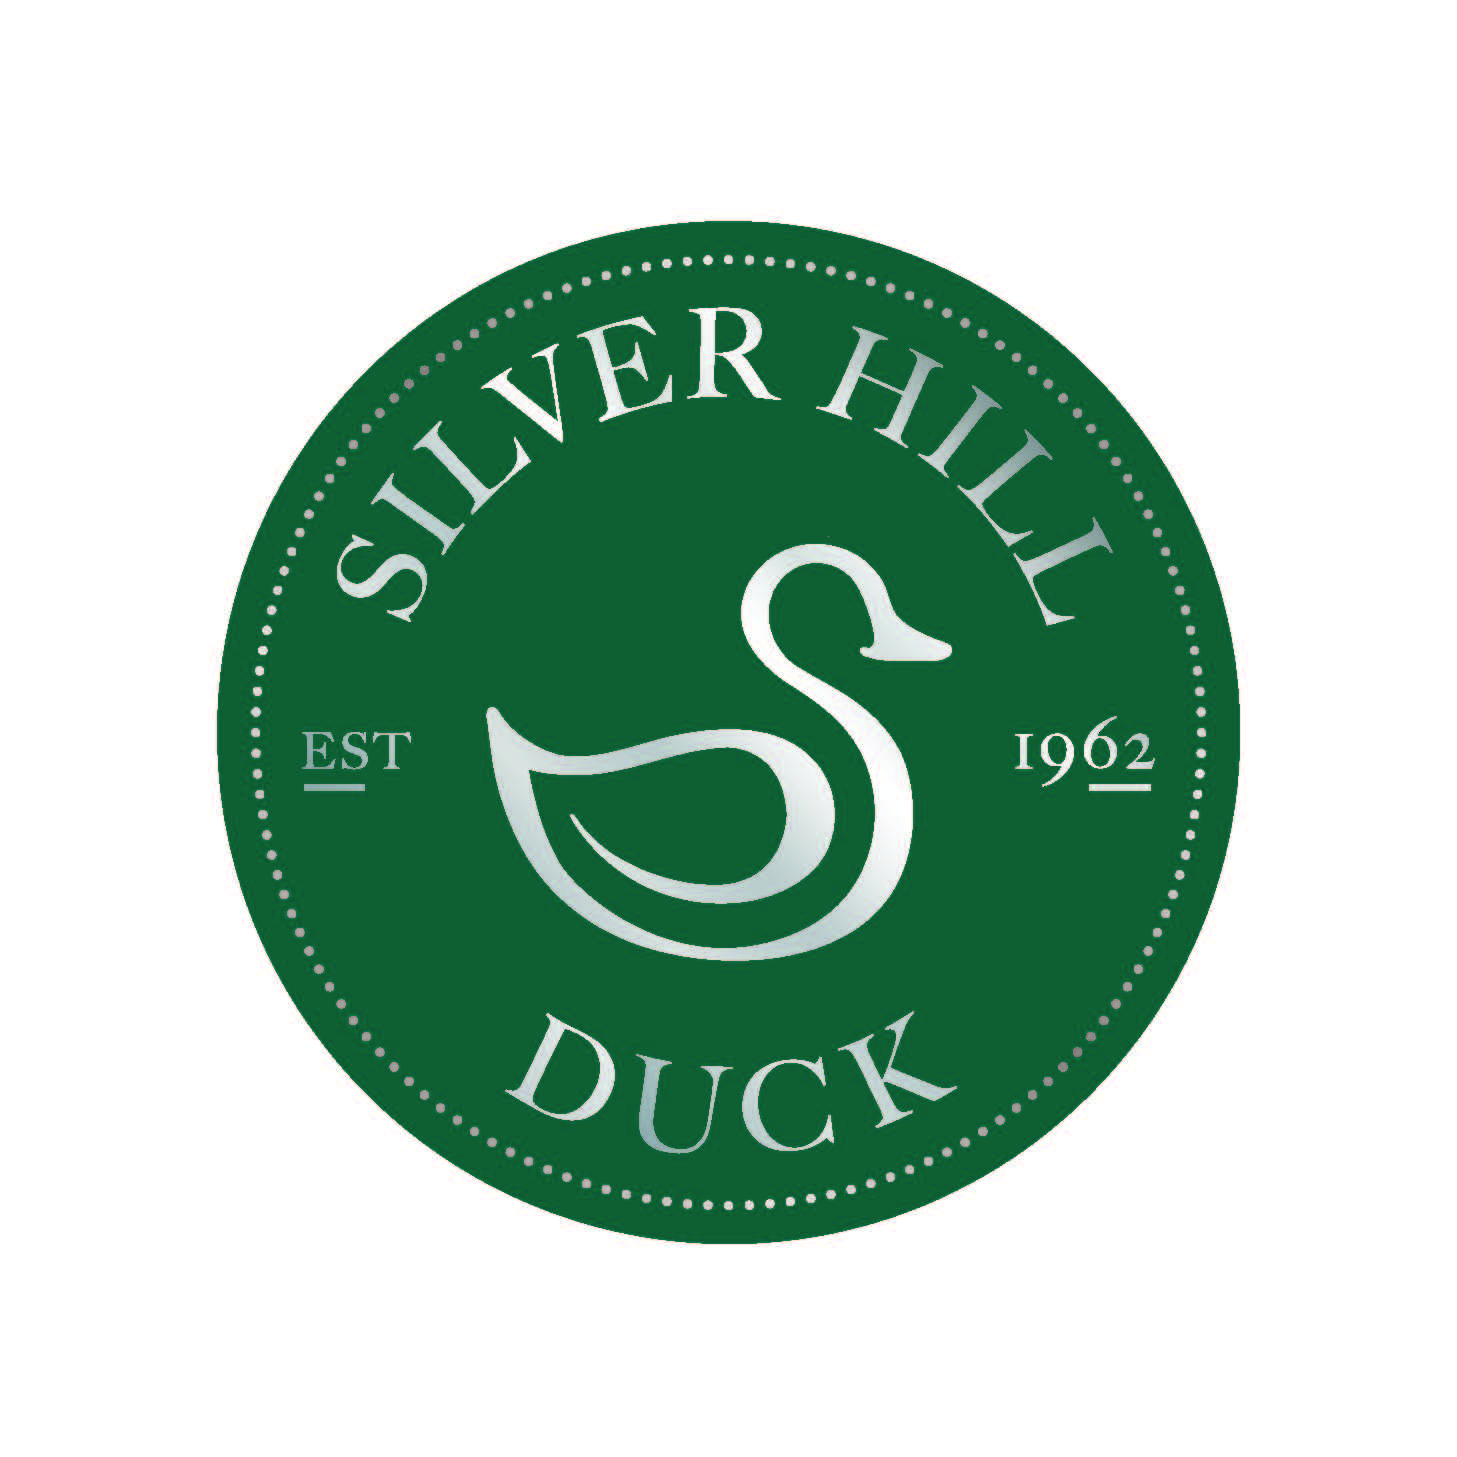 Image of Silver Hill Duck logotype